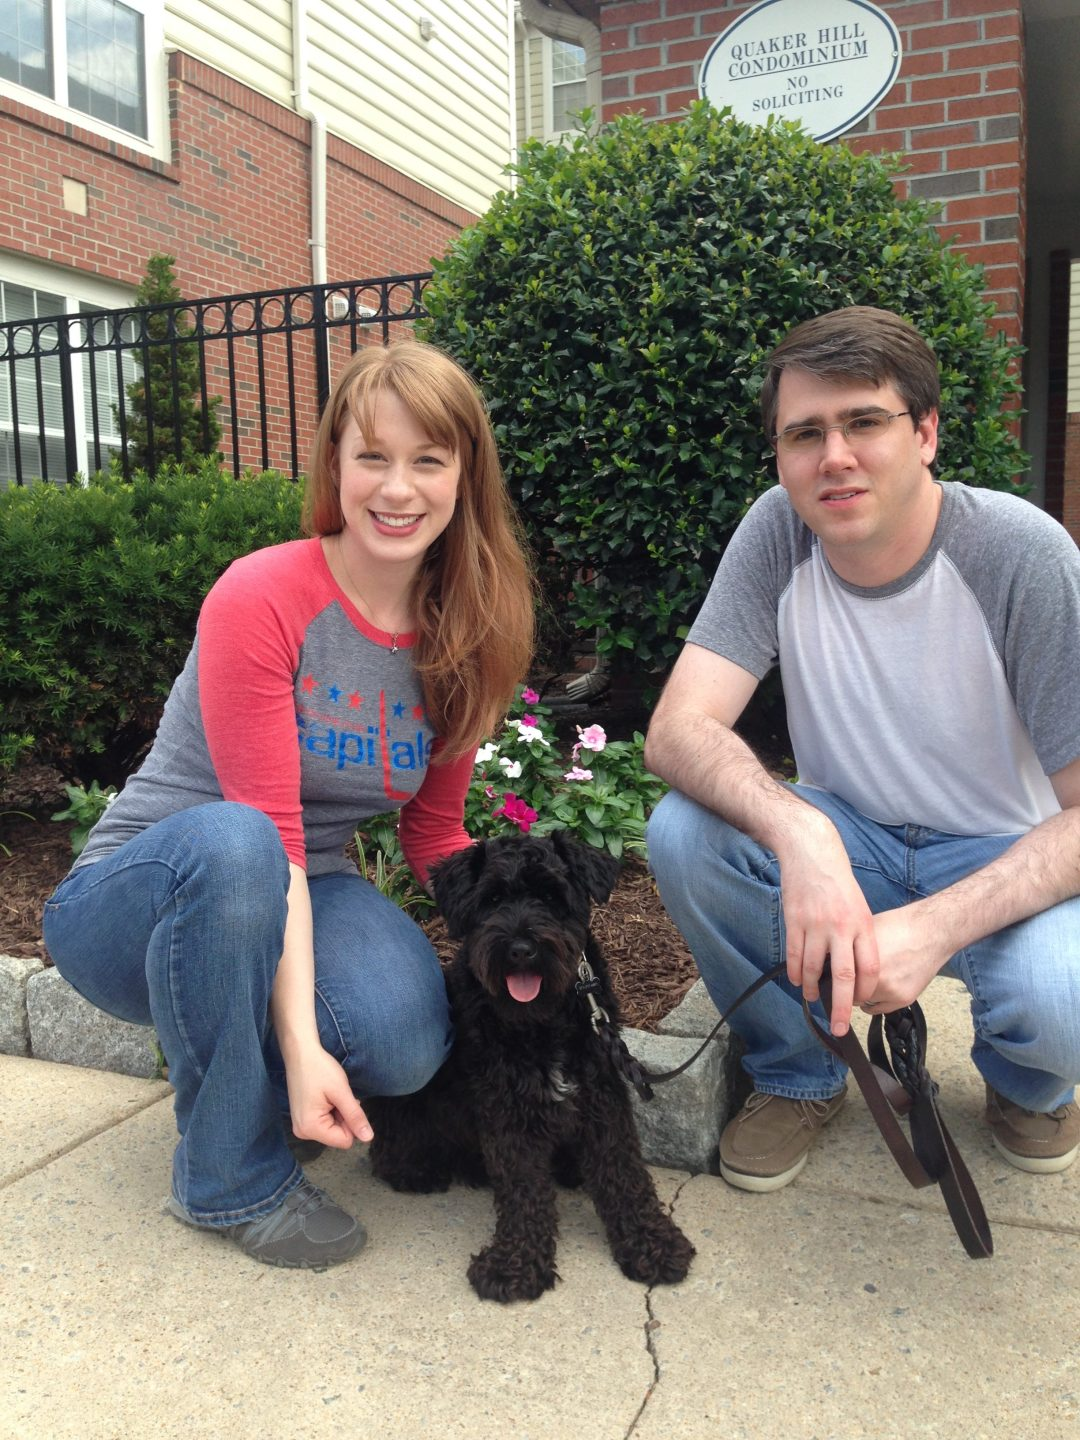 black Schnauzer with owners